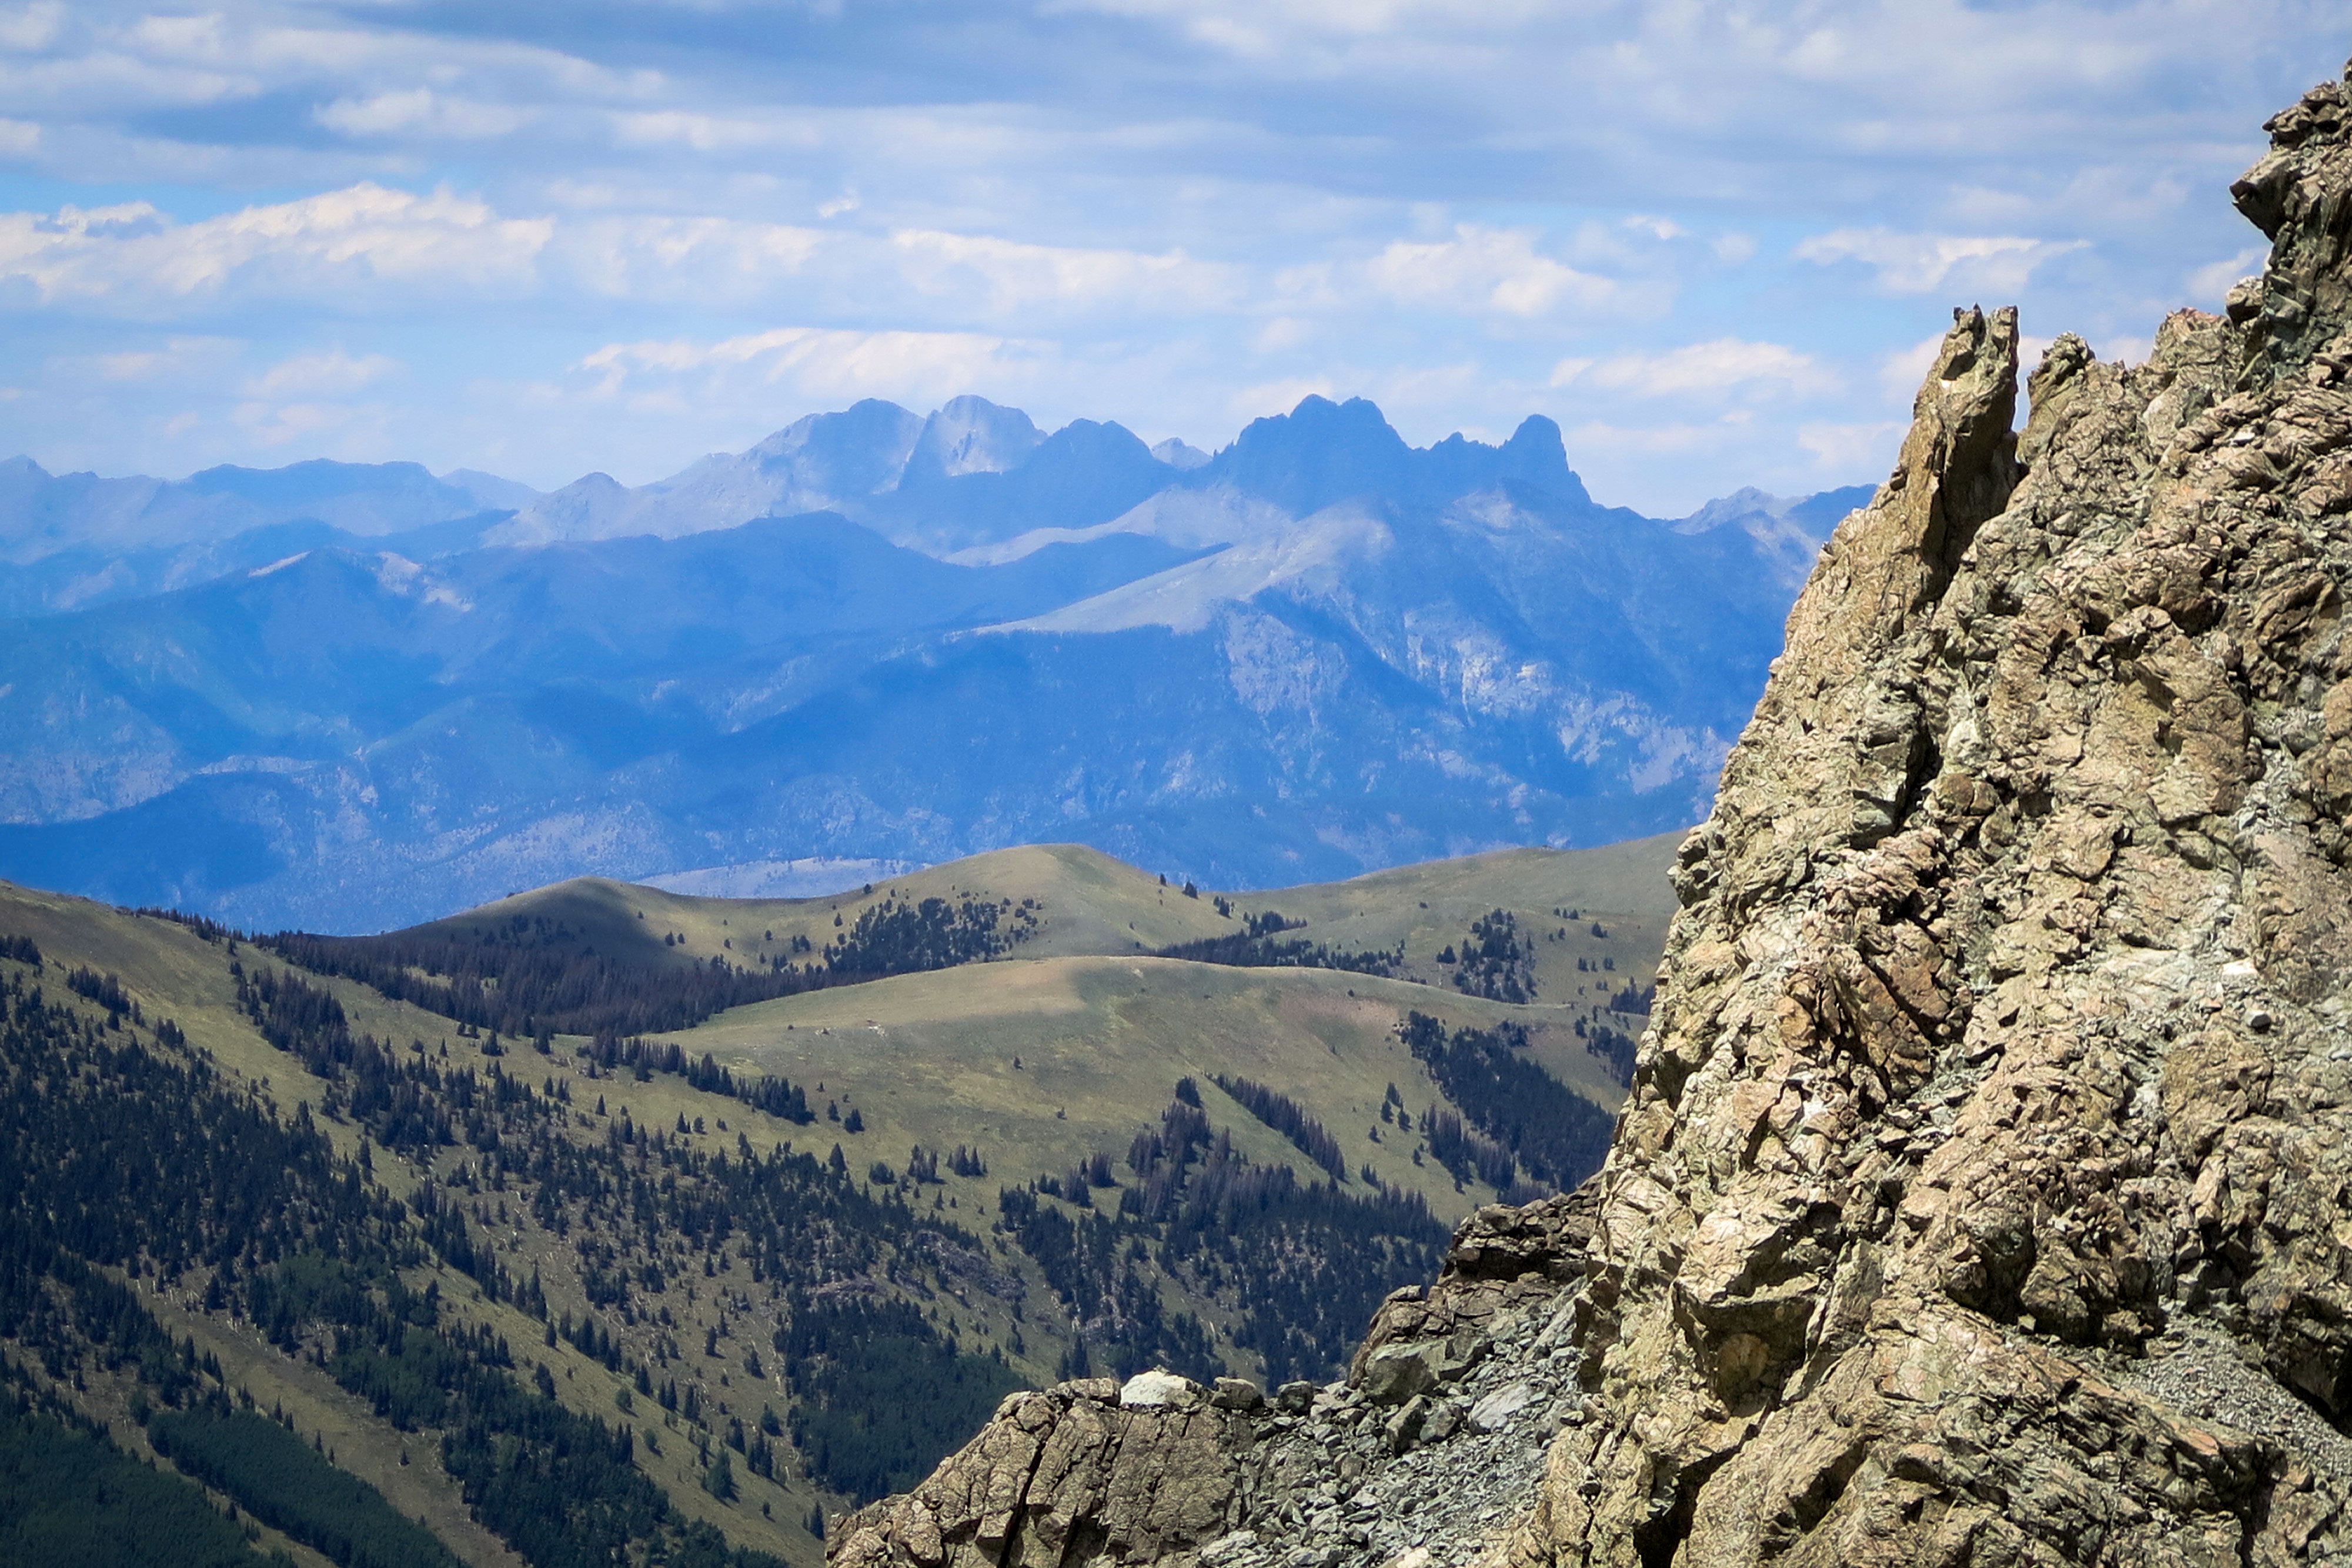 The Crestone group of peaks in the Sangre de Cristo, as seen from Mount Lindsey, includes some of the most difficult 14ersin Colorado.